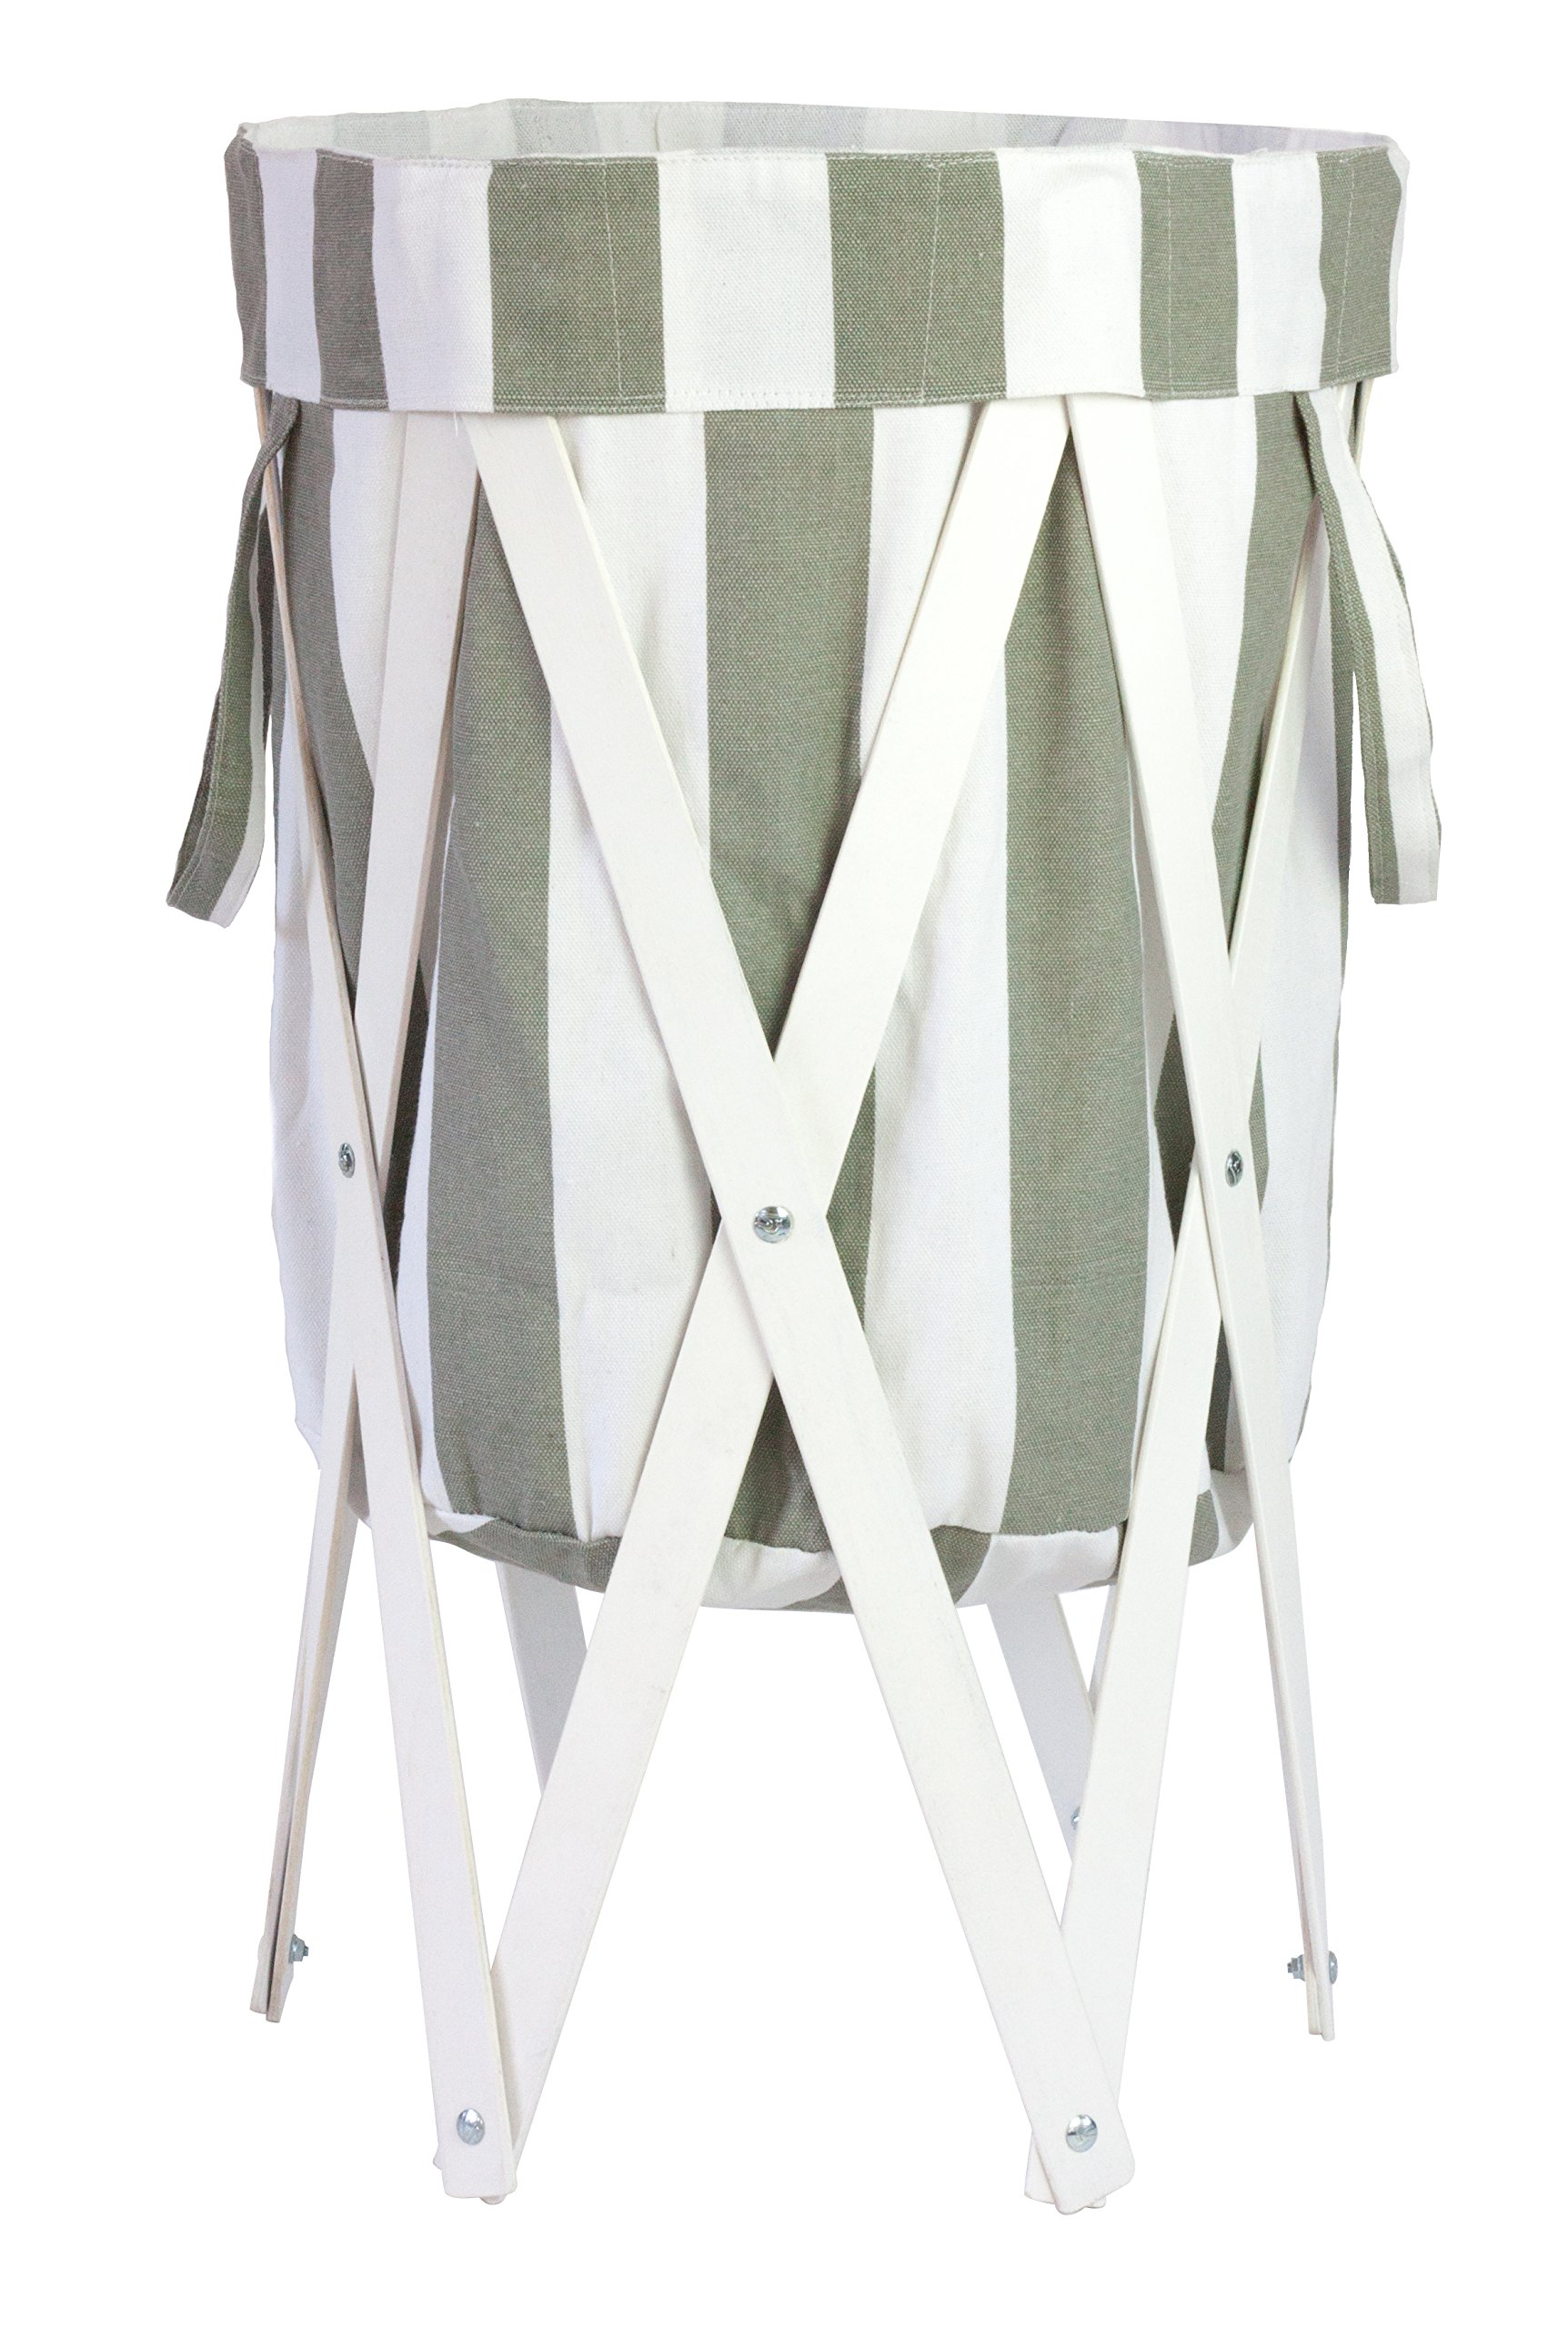 MAX + RAE Collapsible Laundry Hamper with White Wood Frame   Dirty Clothes Storage   Removable Fabric Bag with Handles, Easy to Carry and Clean   Nursery, Kids Bedroom, Bathroom (Gray White Stripes)